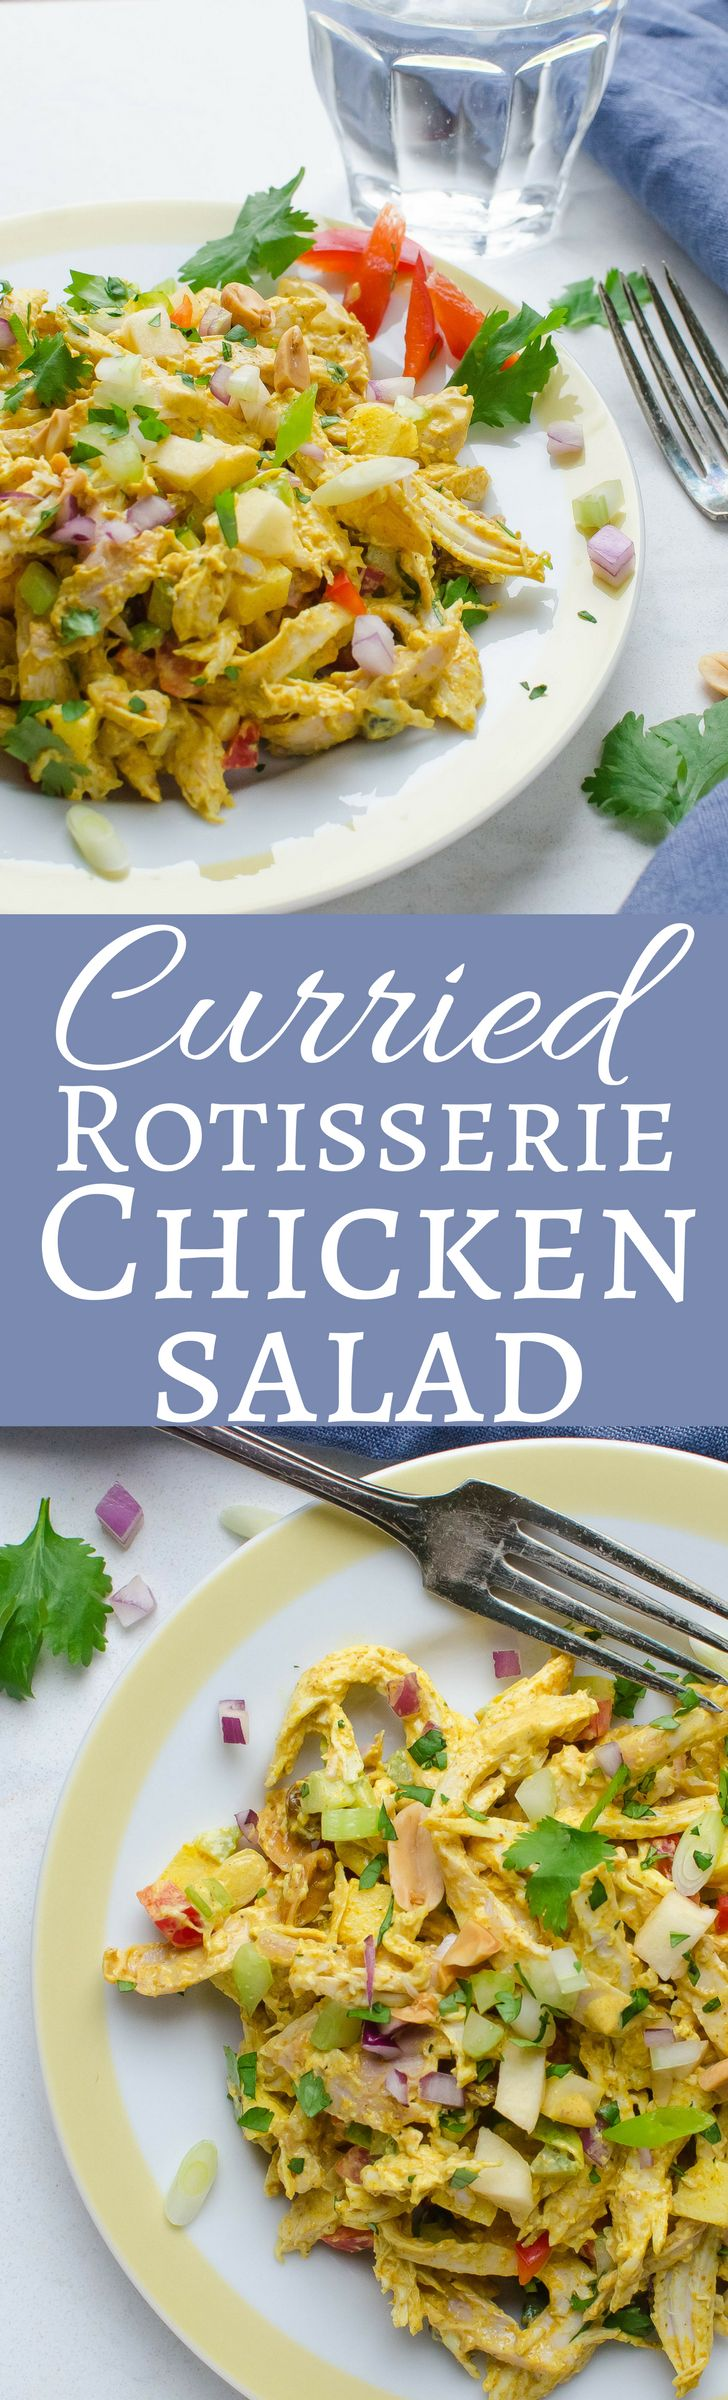 This easy recipe for curried chicken salad includes curry, turmeric, apples, and peanuts. Healthier than regular chicken salad, too!